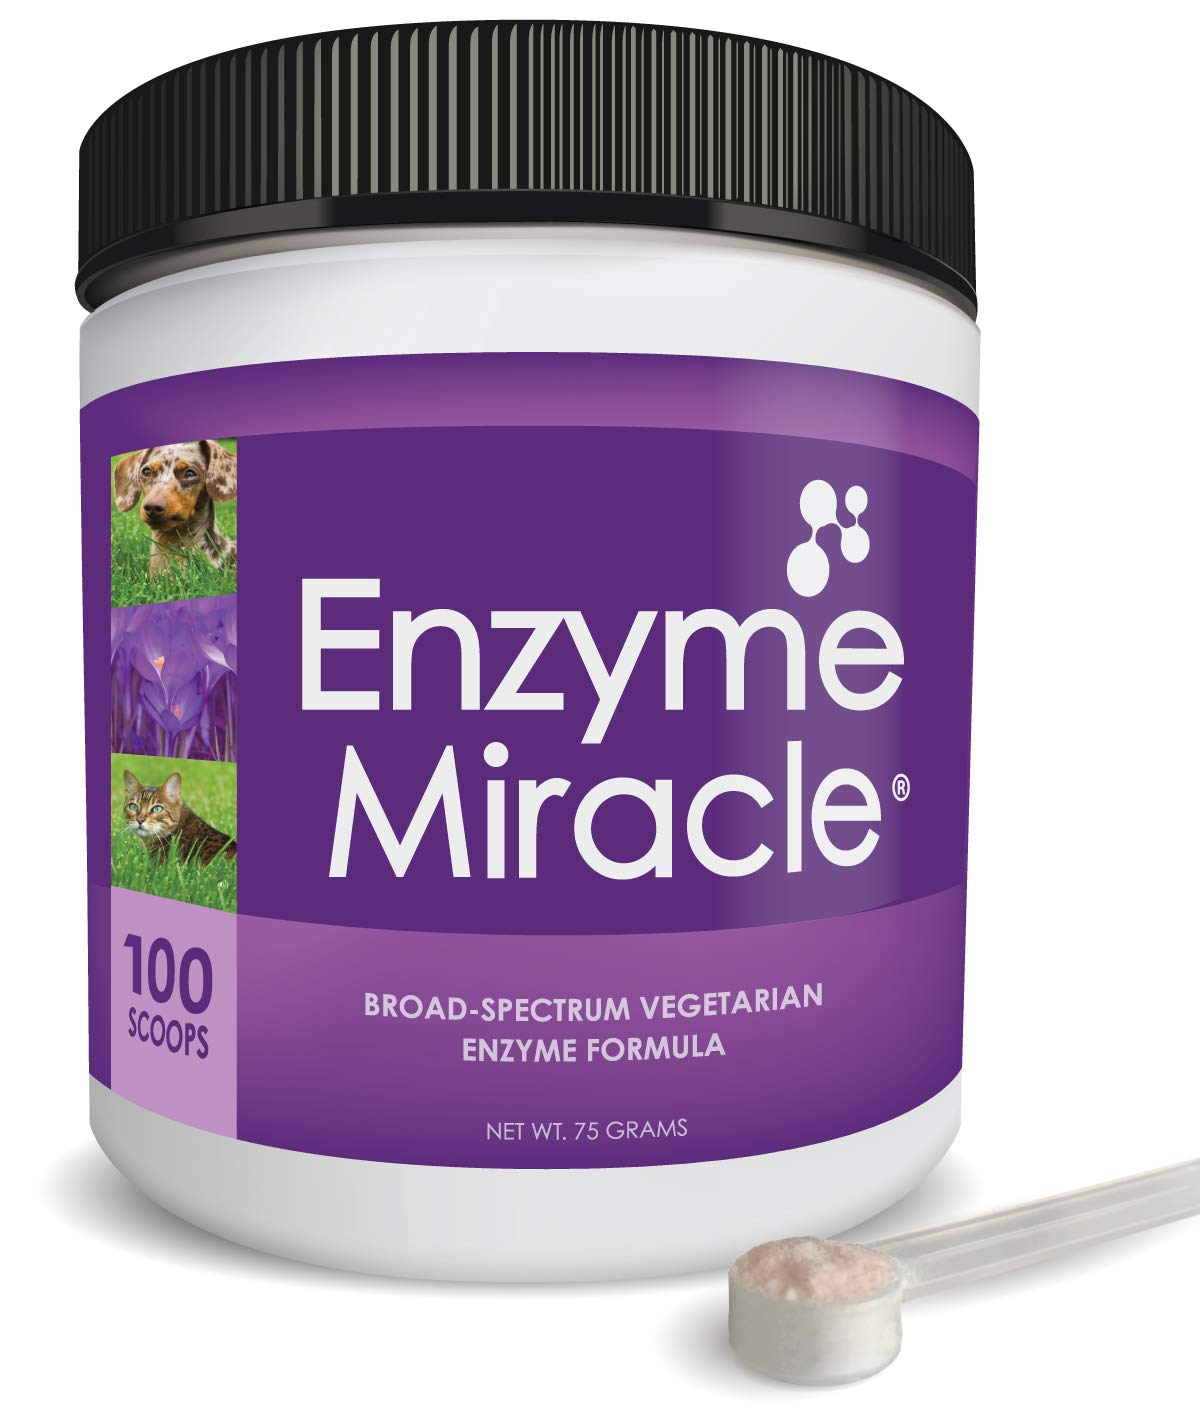 NUSENTIA Enzymes for Cats & Dogs : Enzyme Miracle (100 Servings) : for Digestive Stress, Pancreatic Concerns, and Healthy Weight Management. by NUSENTIA